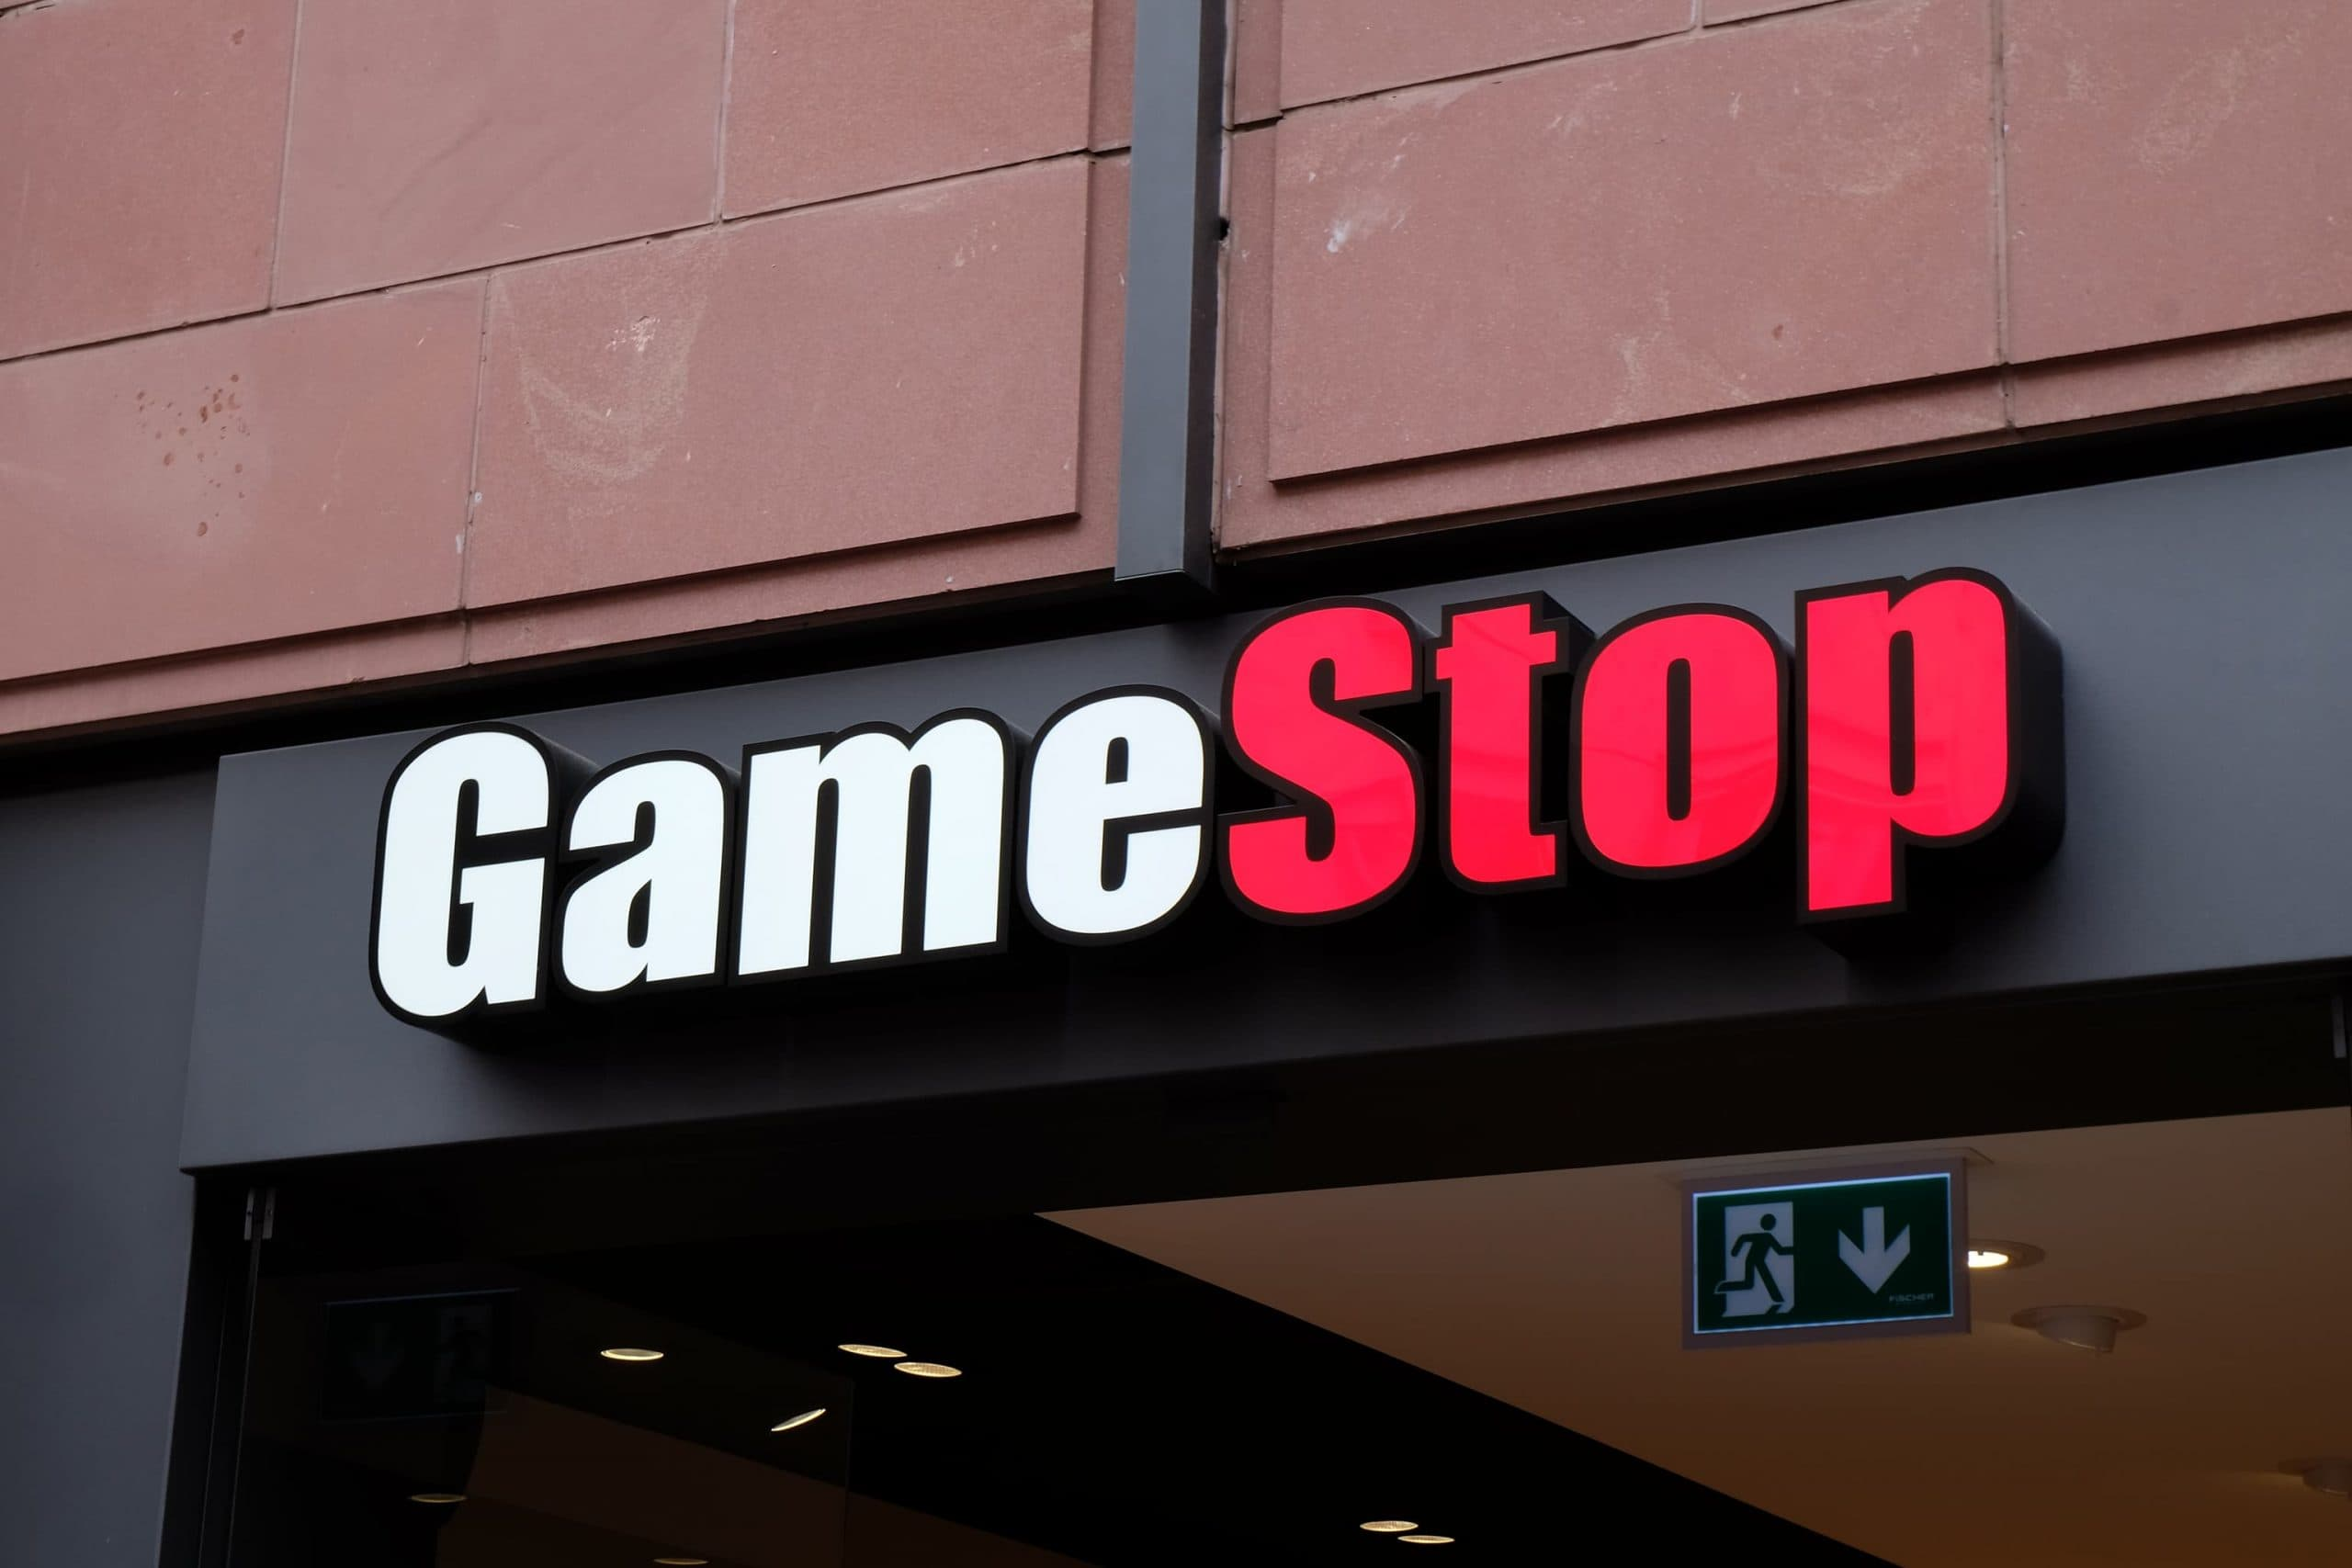 Gamestop-Filiale in Frankfurt am Main.